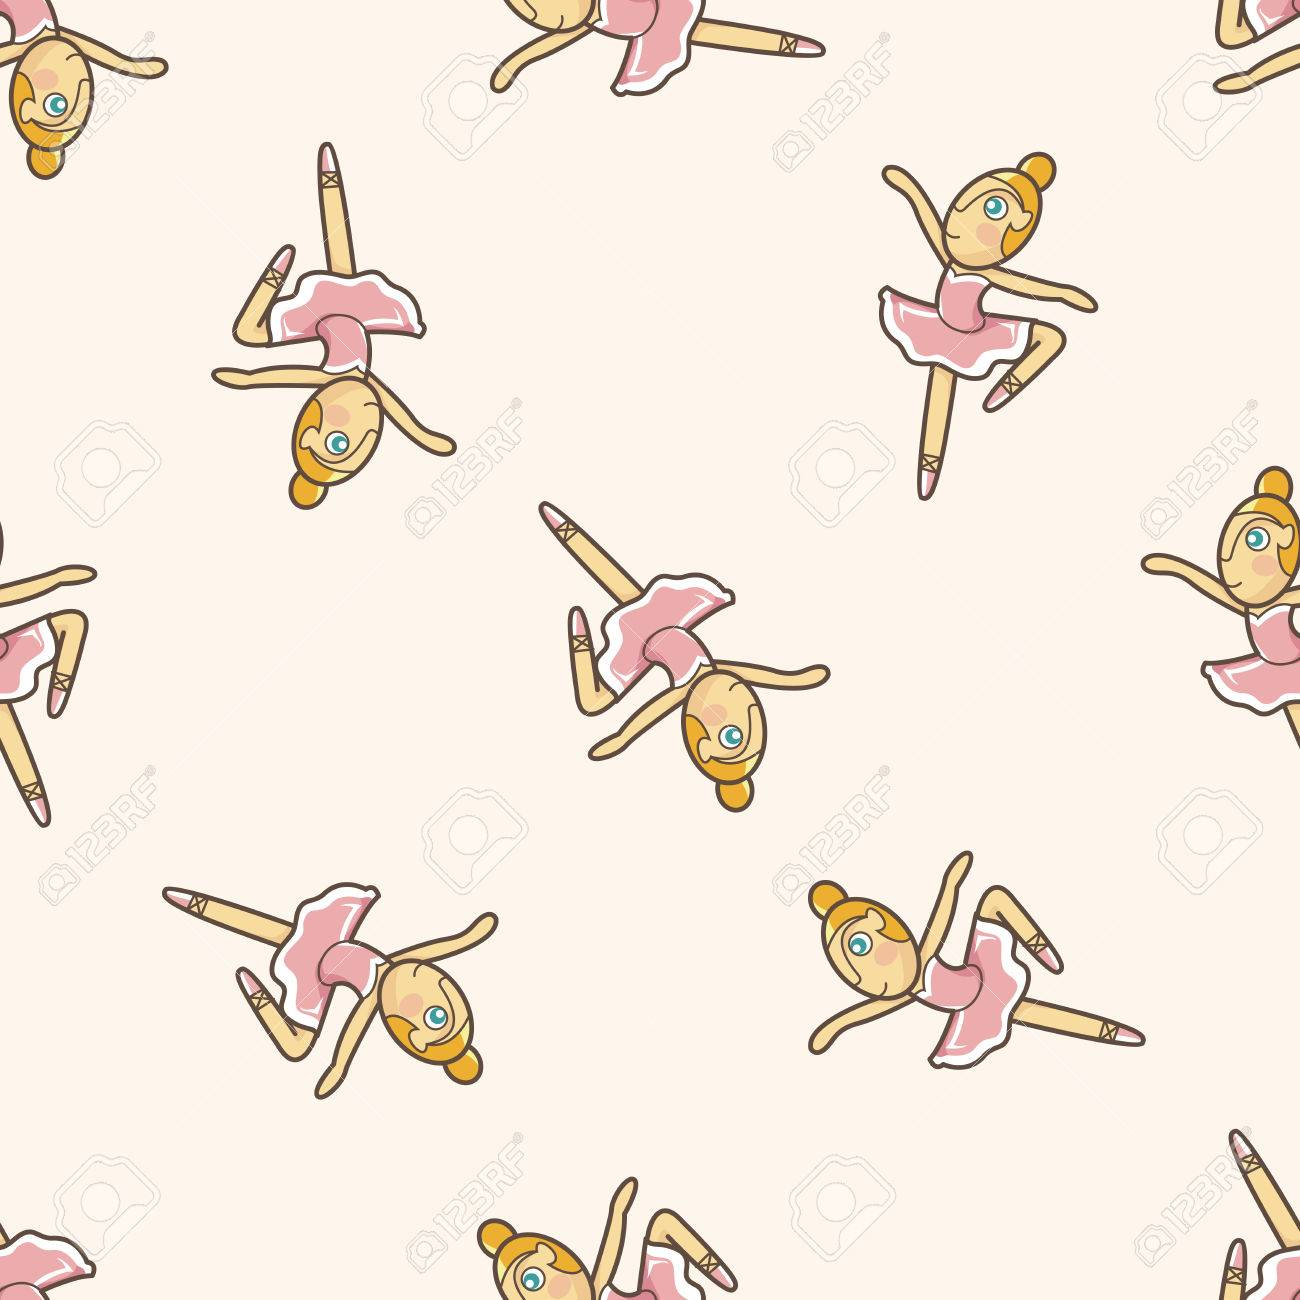 Seamless pattern of ballet dancers royalty free stock photography - Ballet Dancer Cartoon Seamless Pattern Background Stock Vector 39486803